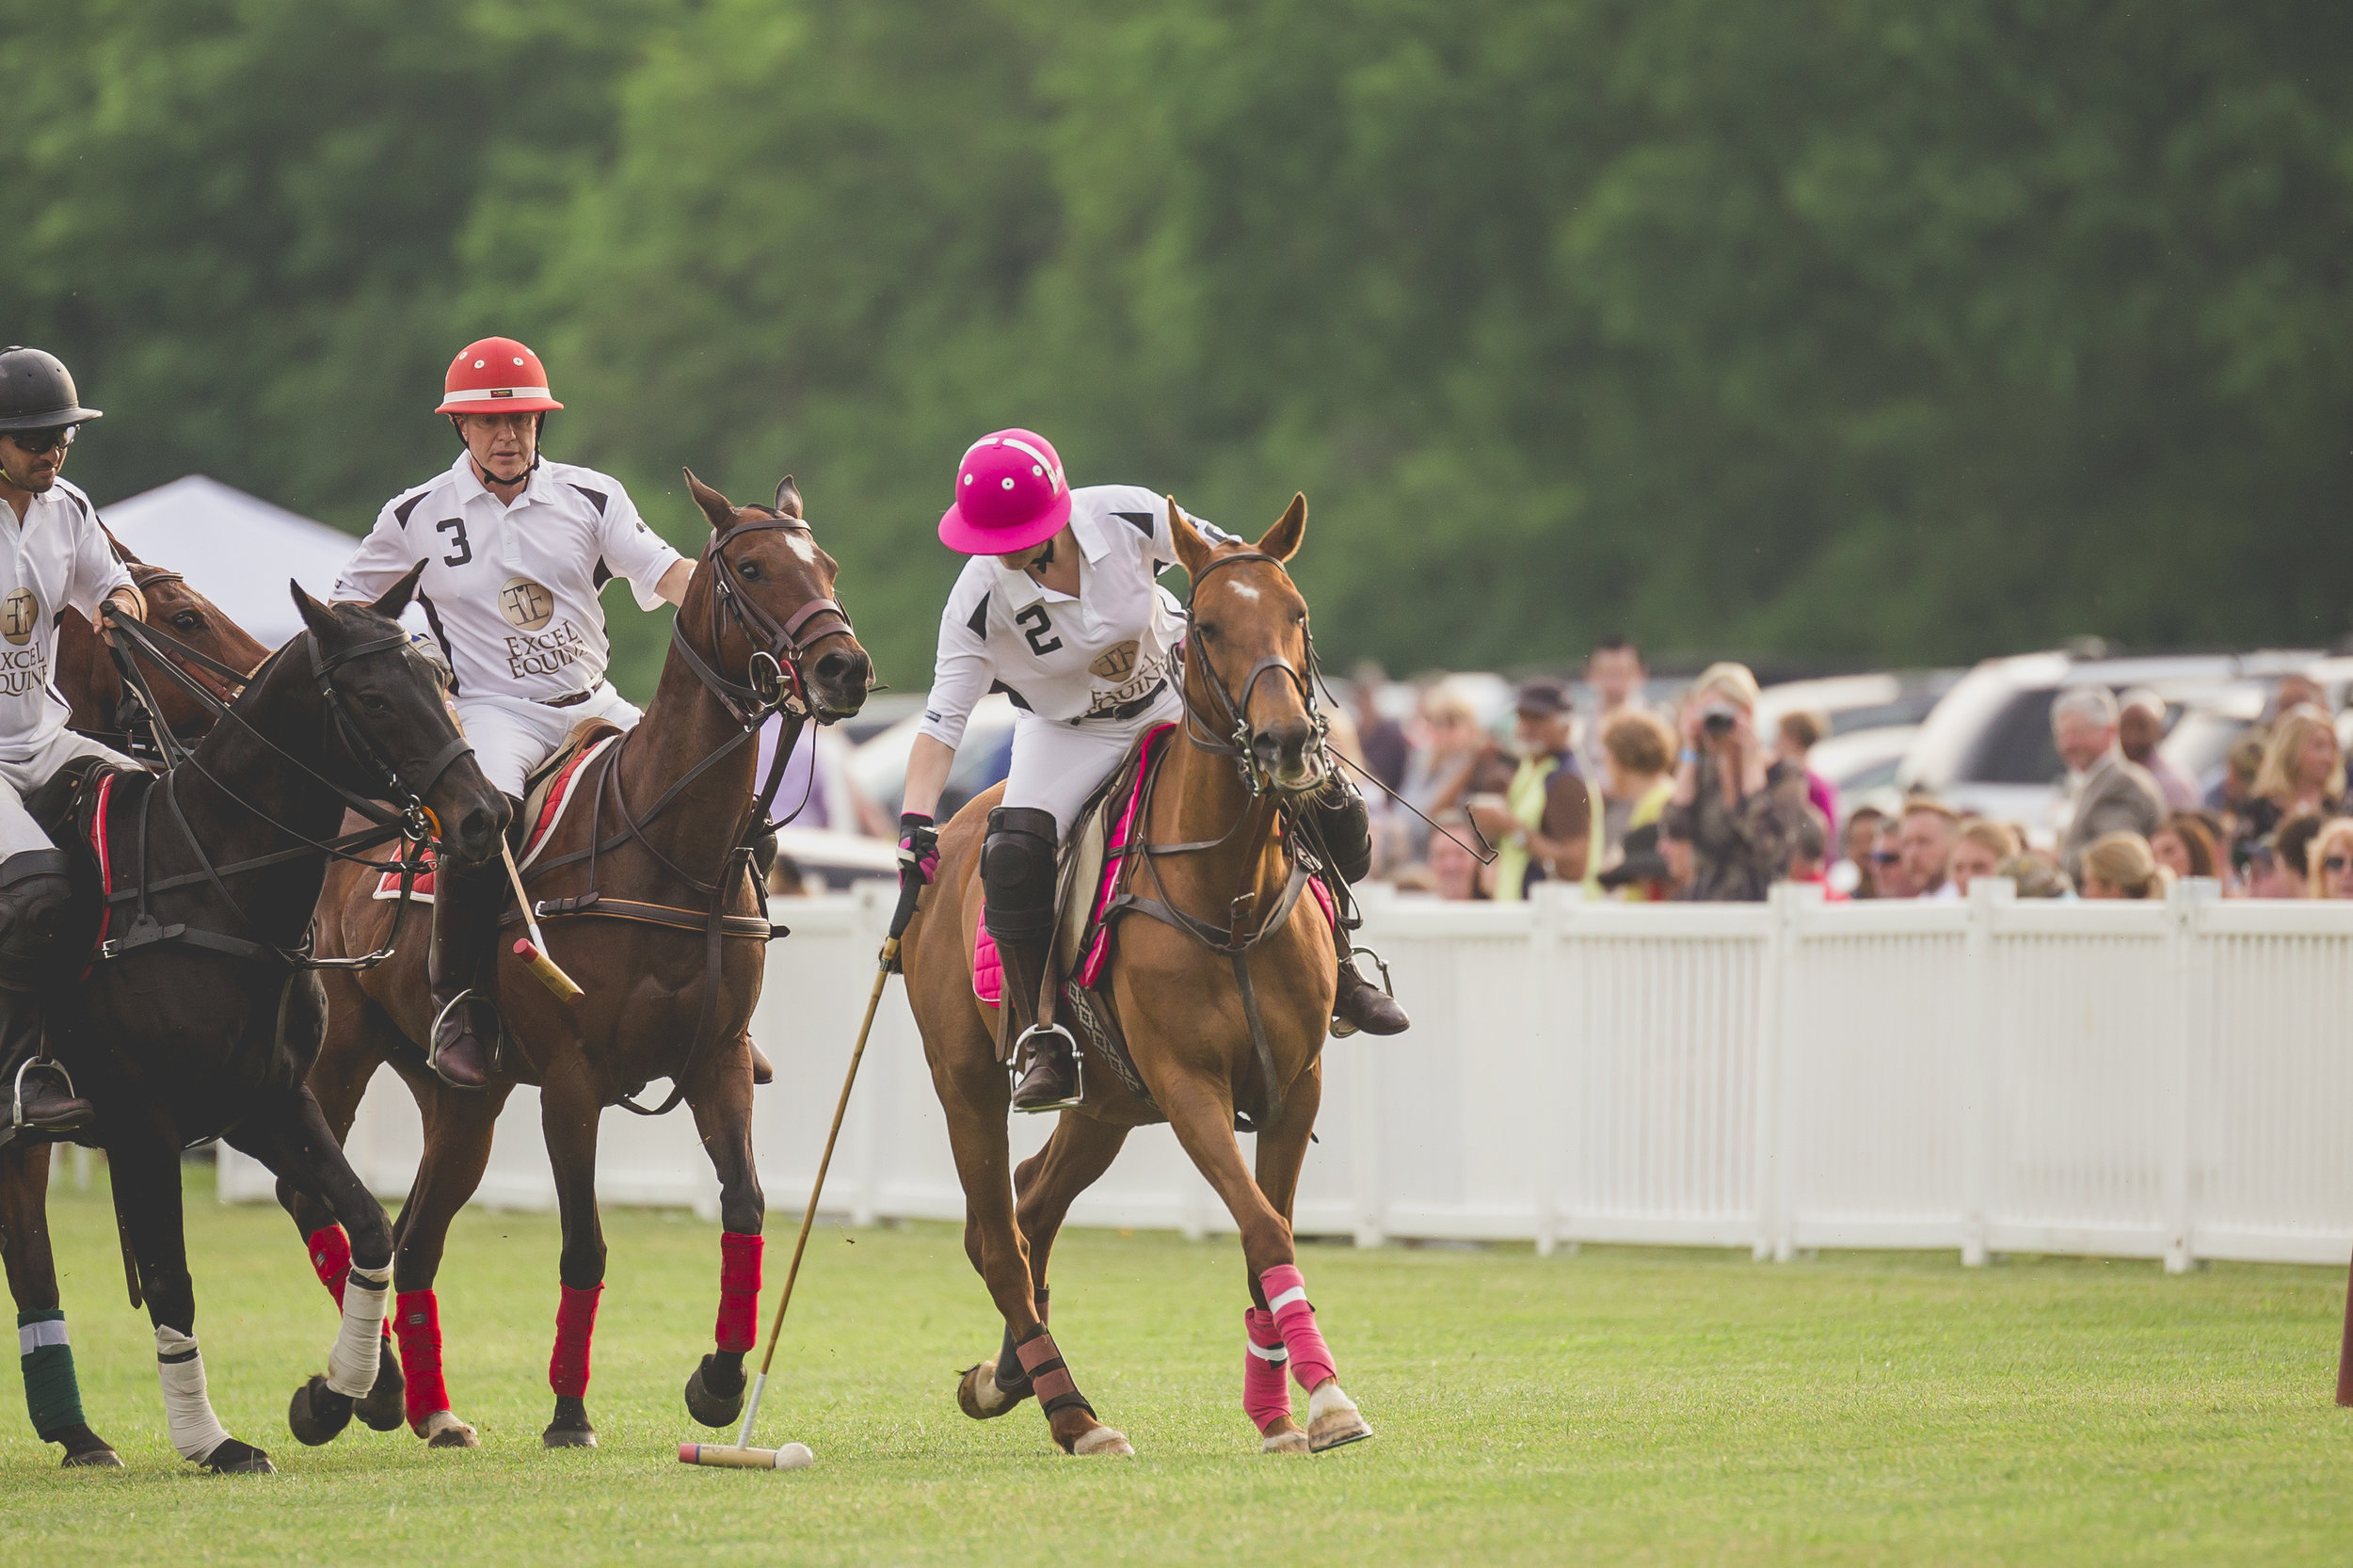 BBP-TWILIGHT POLO - -1-12.jpg